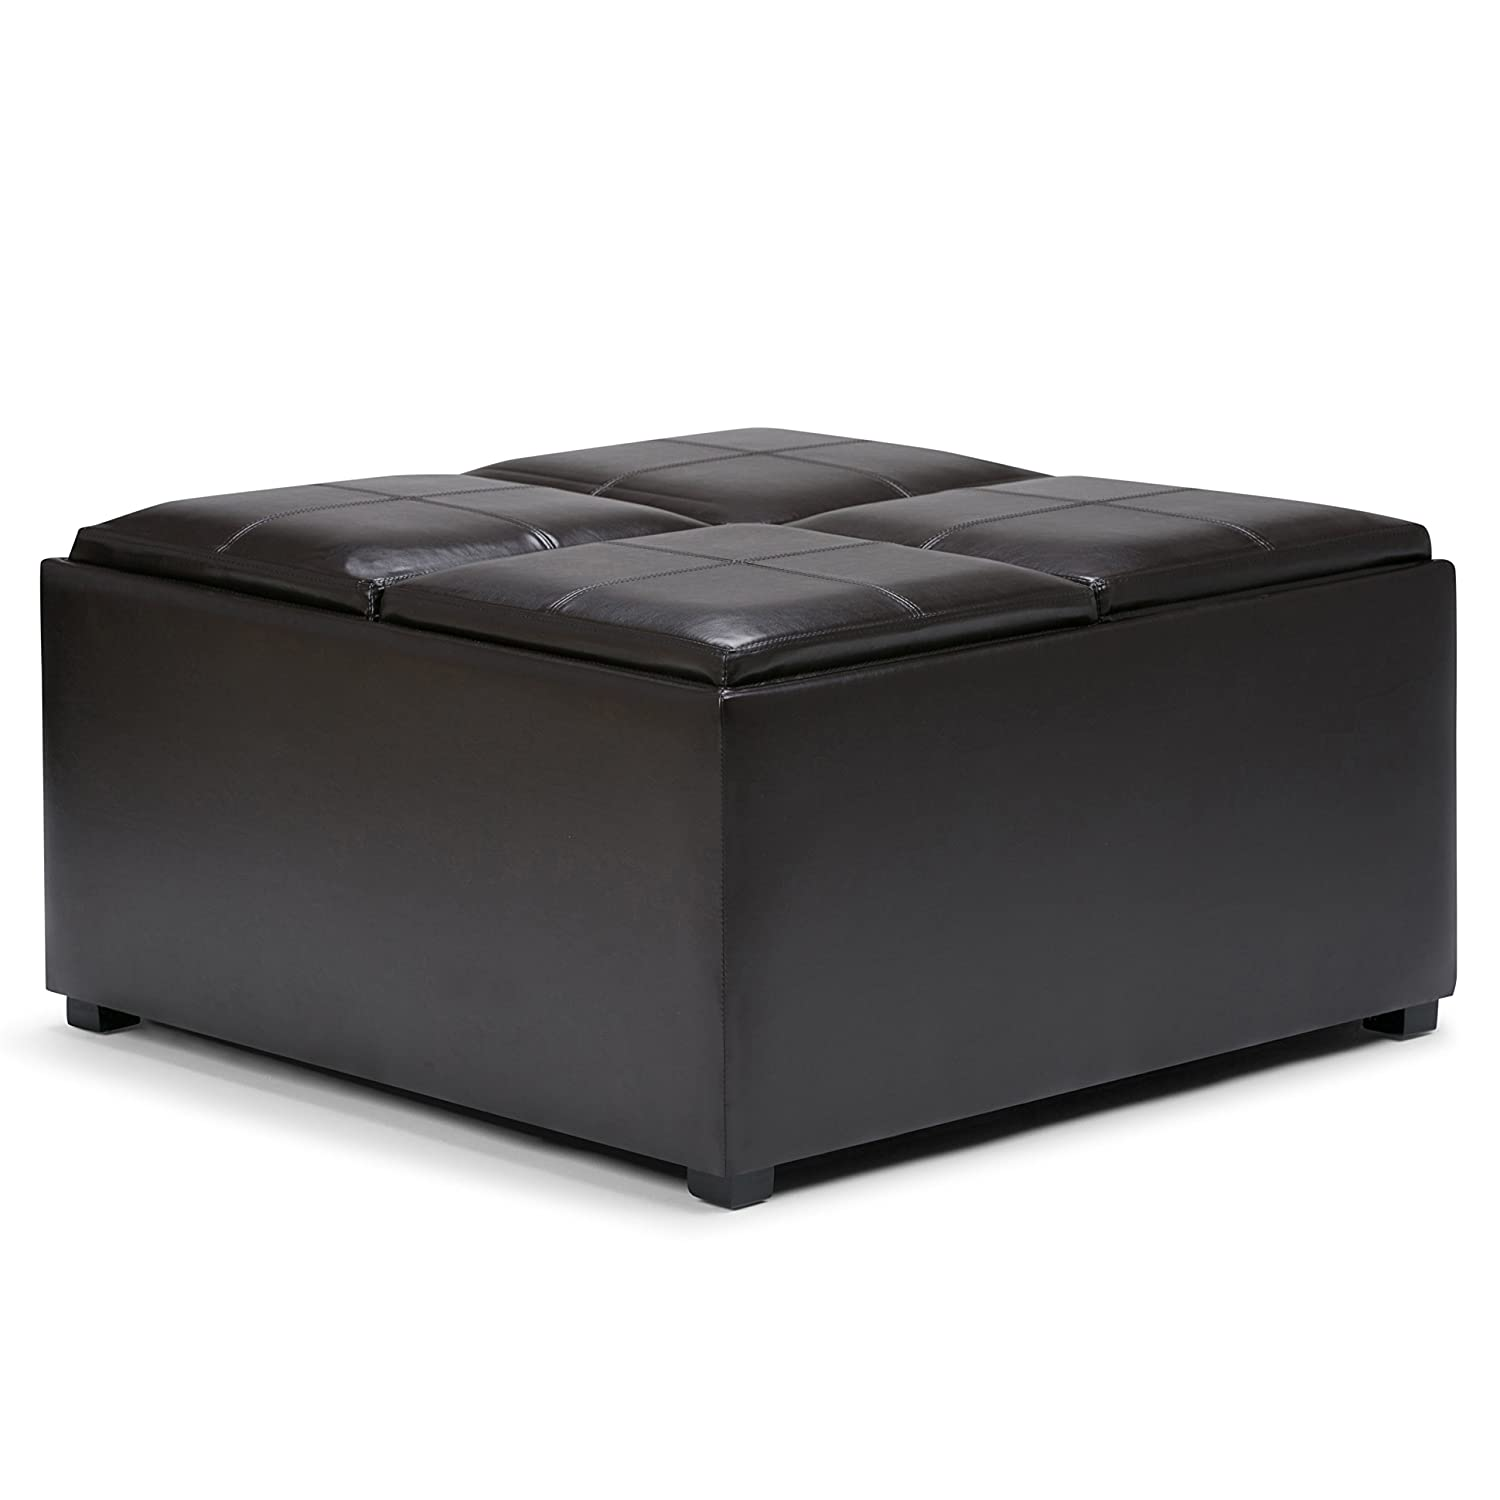 Amazon simpli home avalon coffee table storage ottoman w 4 amazon simpli home avalon coffee table storage ottoman w 4 serving trays pu leather brown kitchen dining geotapseo Choice Image